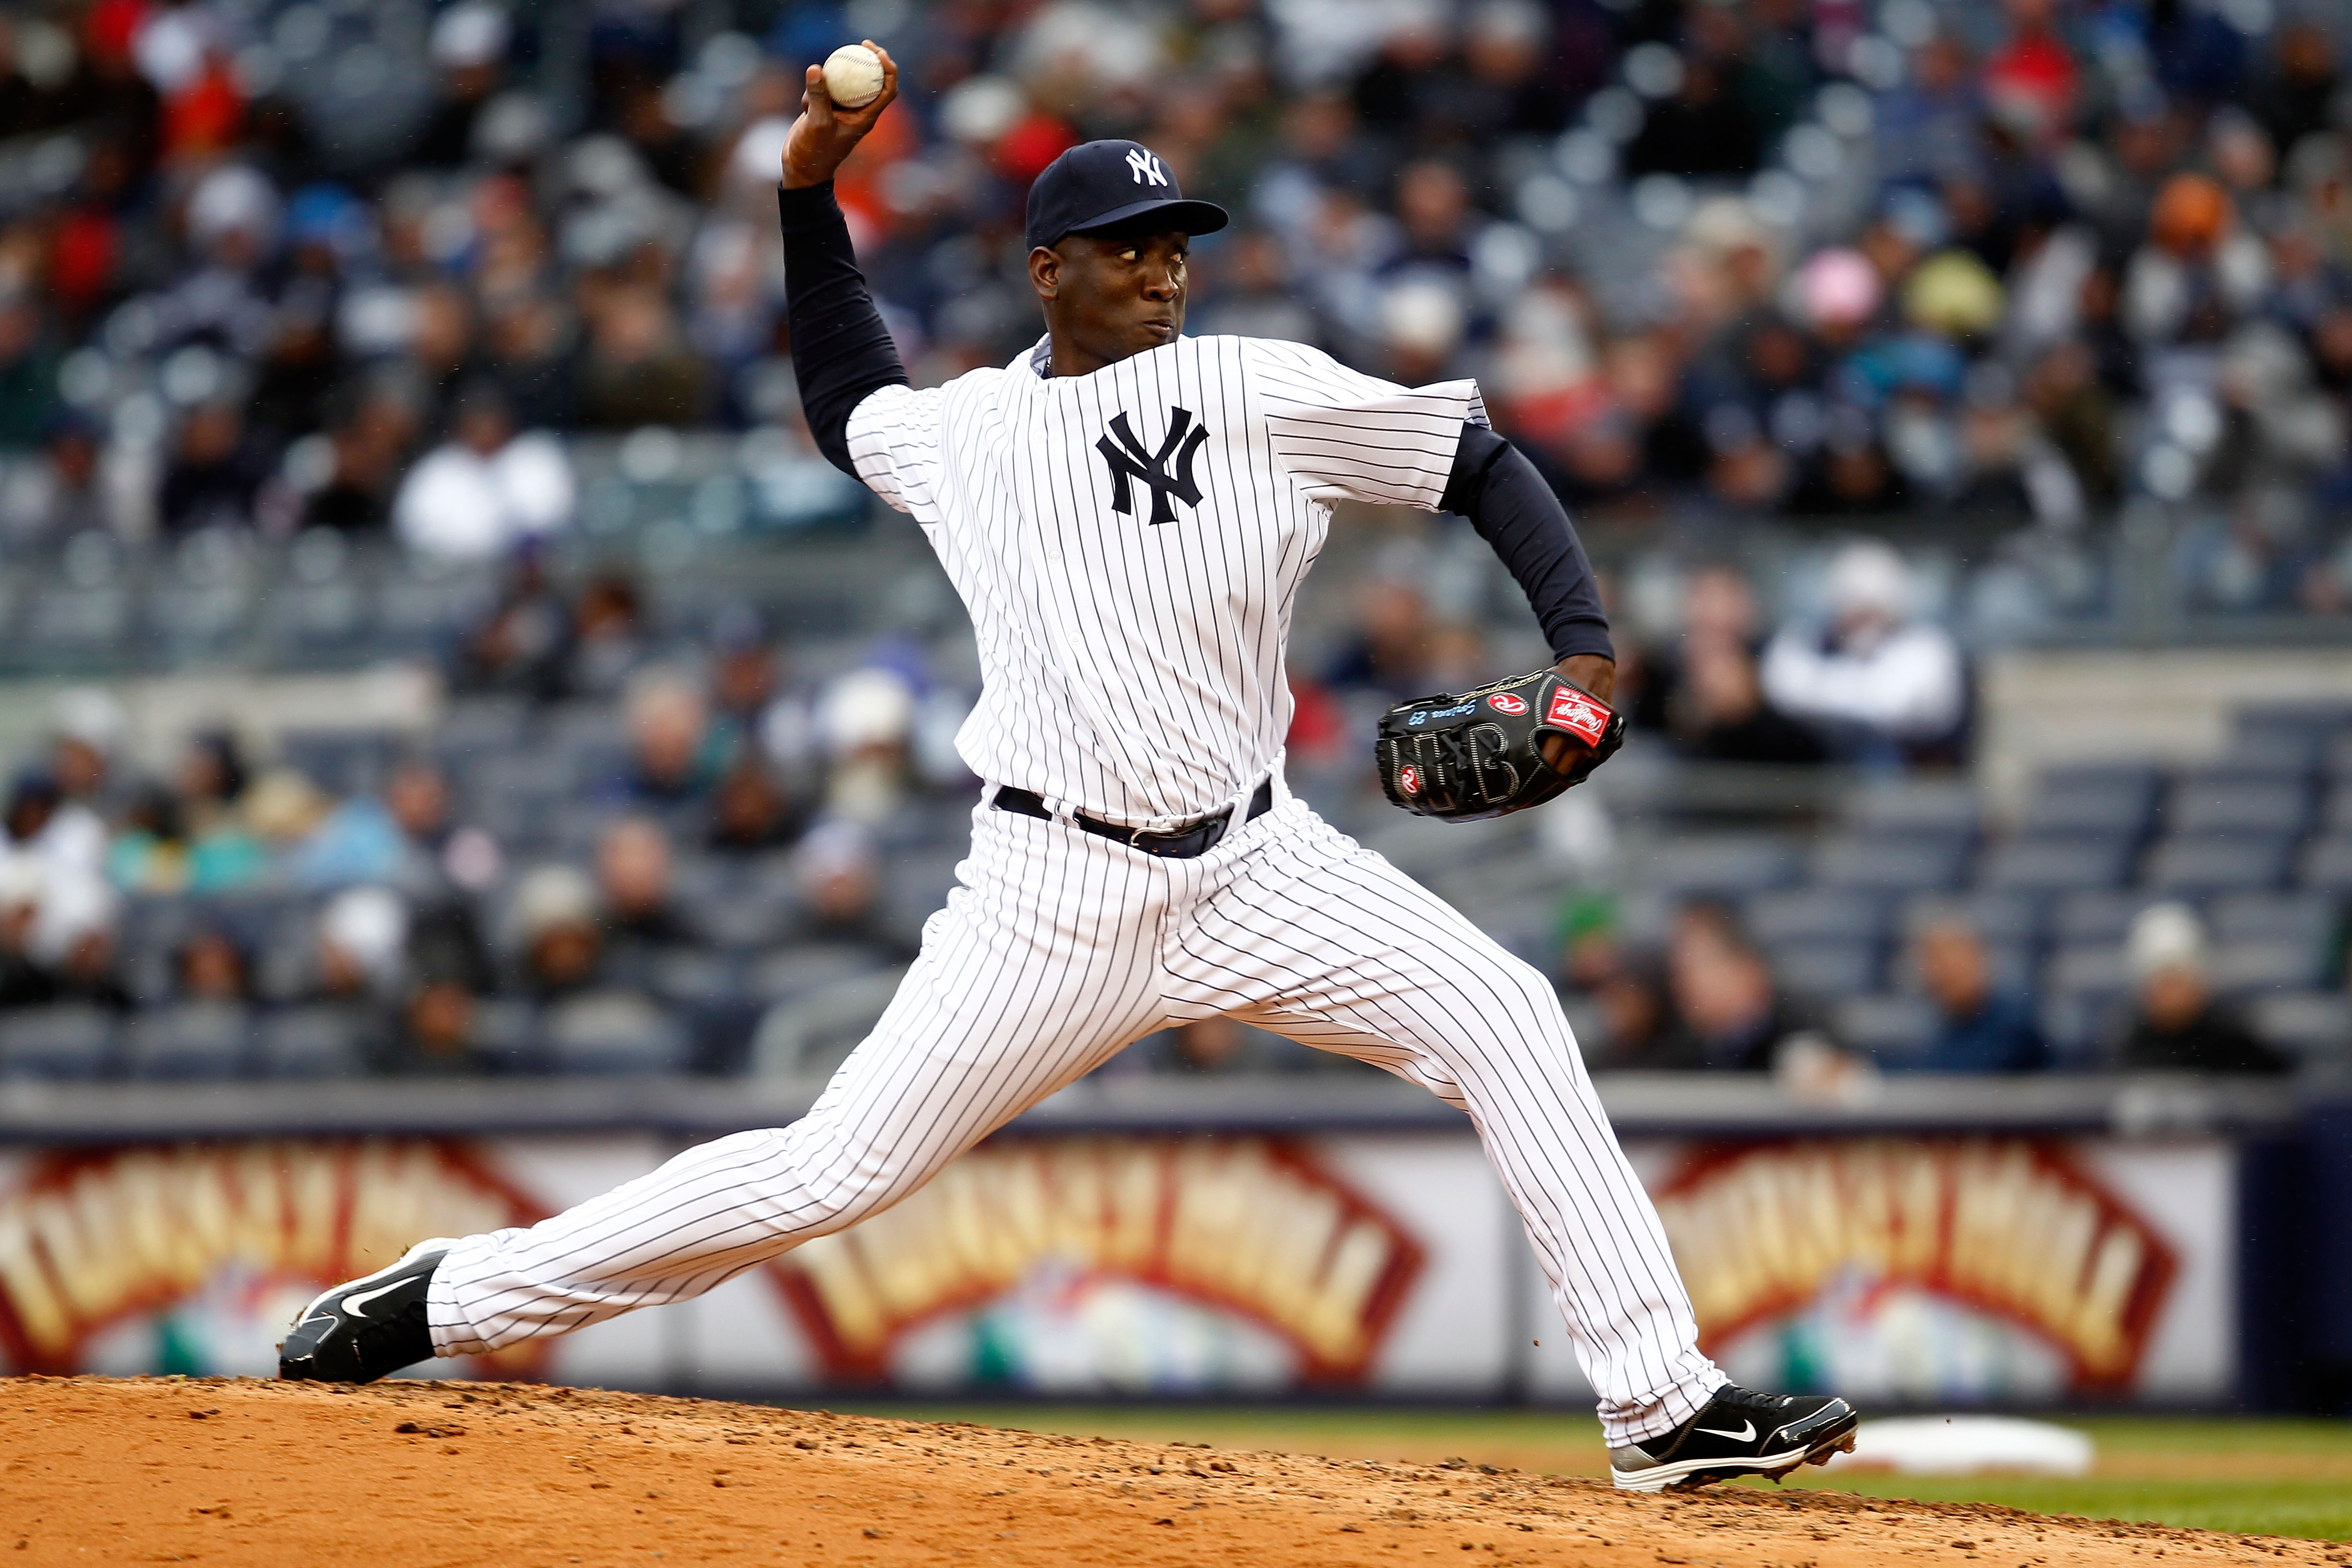 NEW YORK, NY - MARCH 31:  Rafael Soriano #29 of the New York Yankees pitches against the Detroit Tigers in the eighth inning on Opening Day at Yankee Stadium on March 31, 2011 in the Bronx borough of New York City.  (Photo by Jeff Zelevansky/Getty Images)